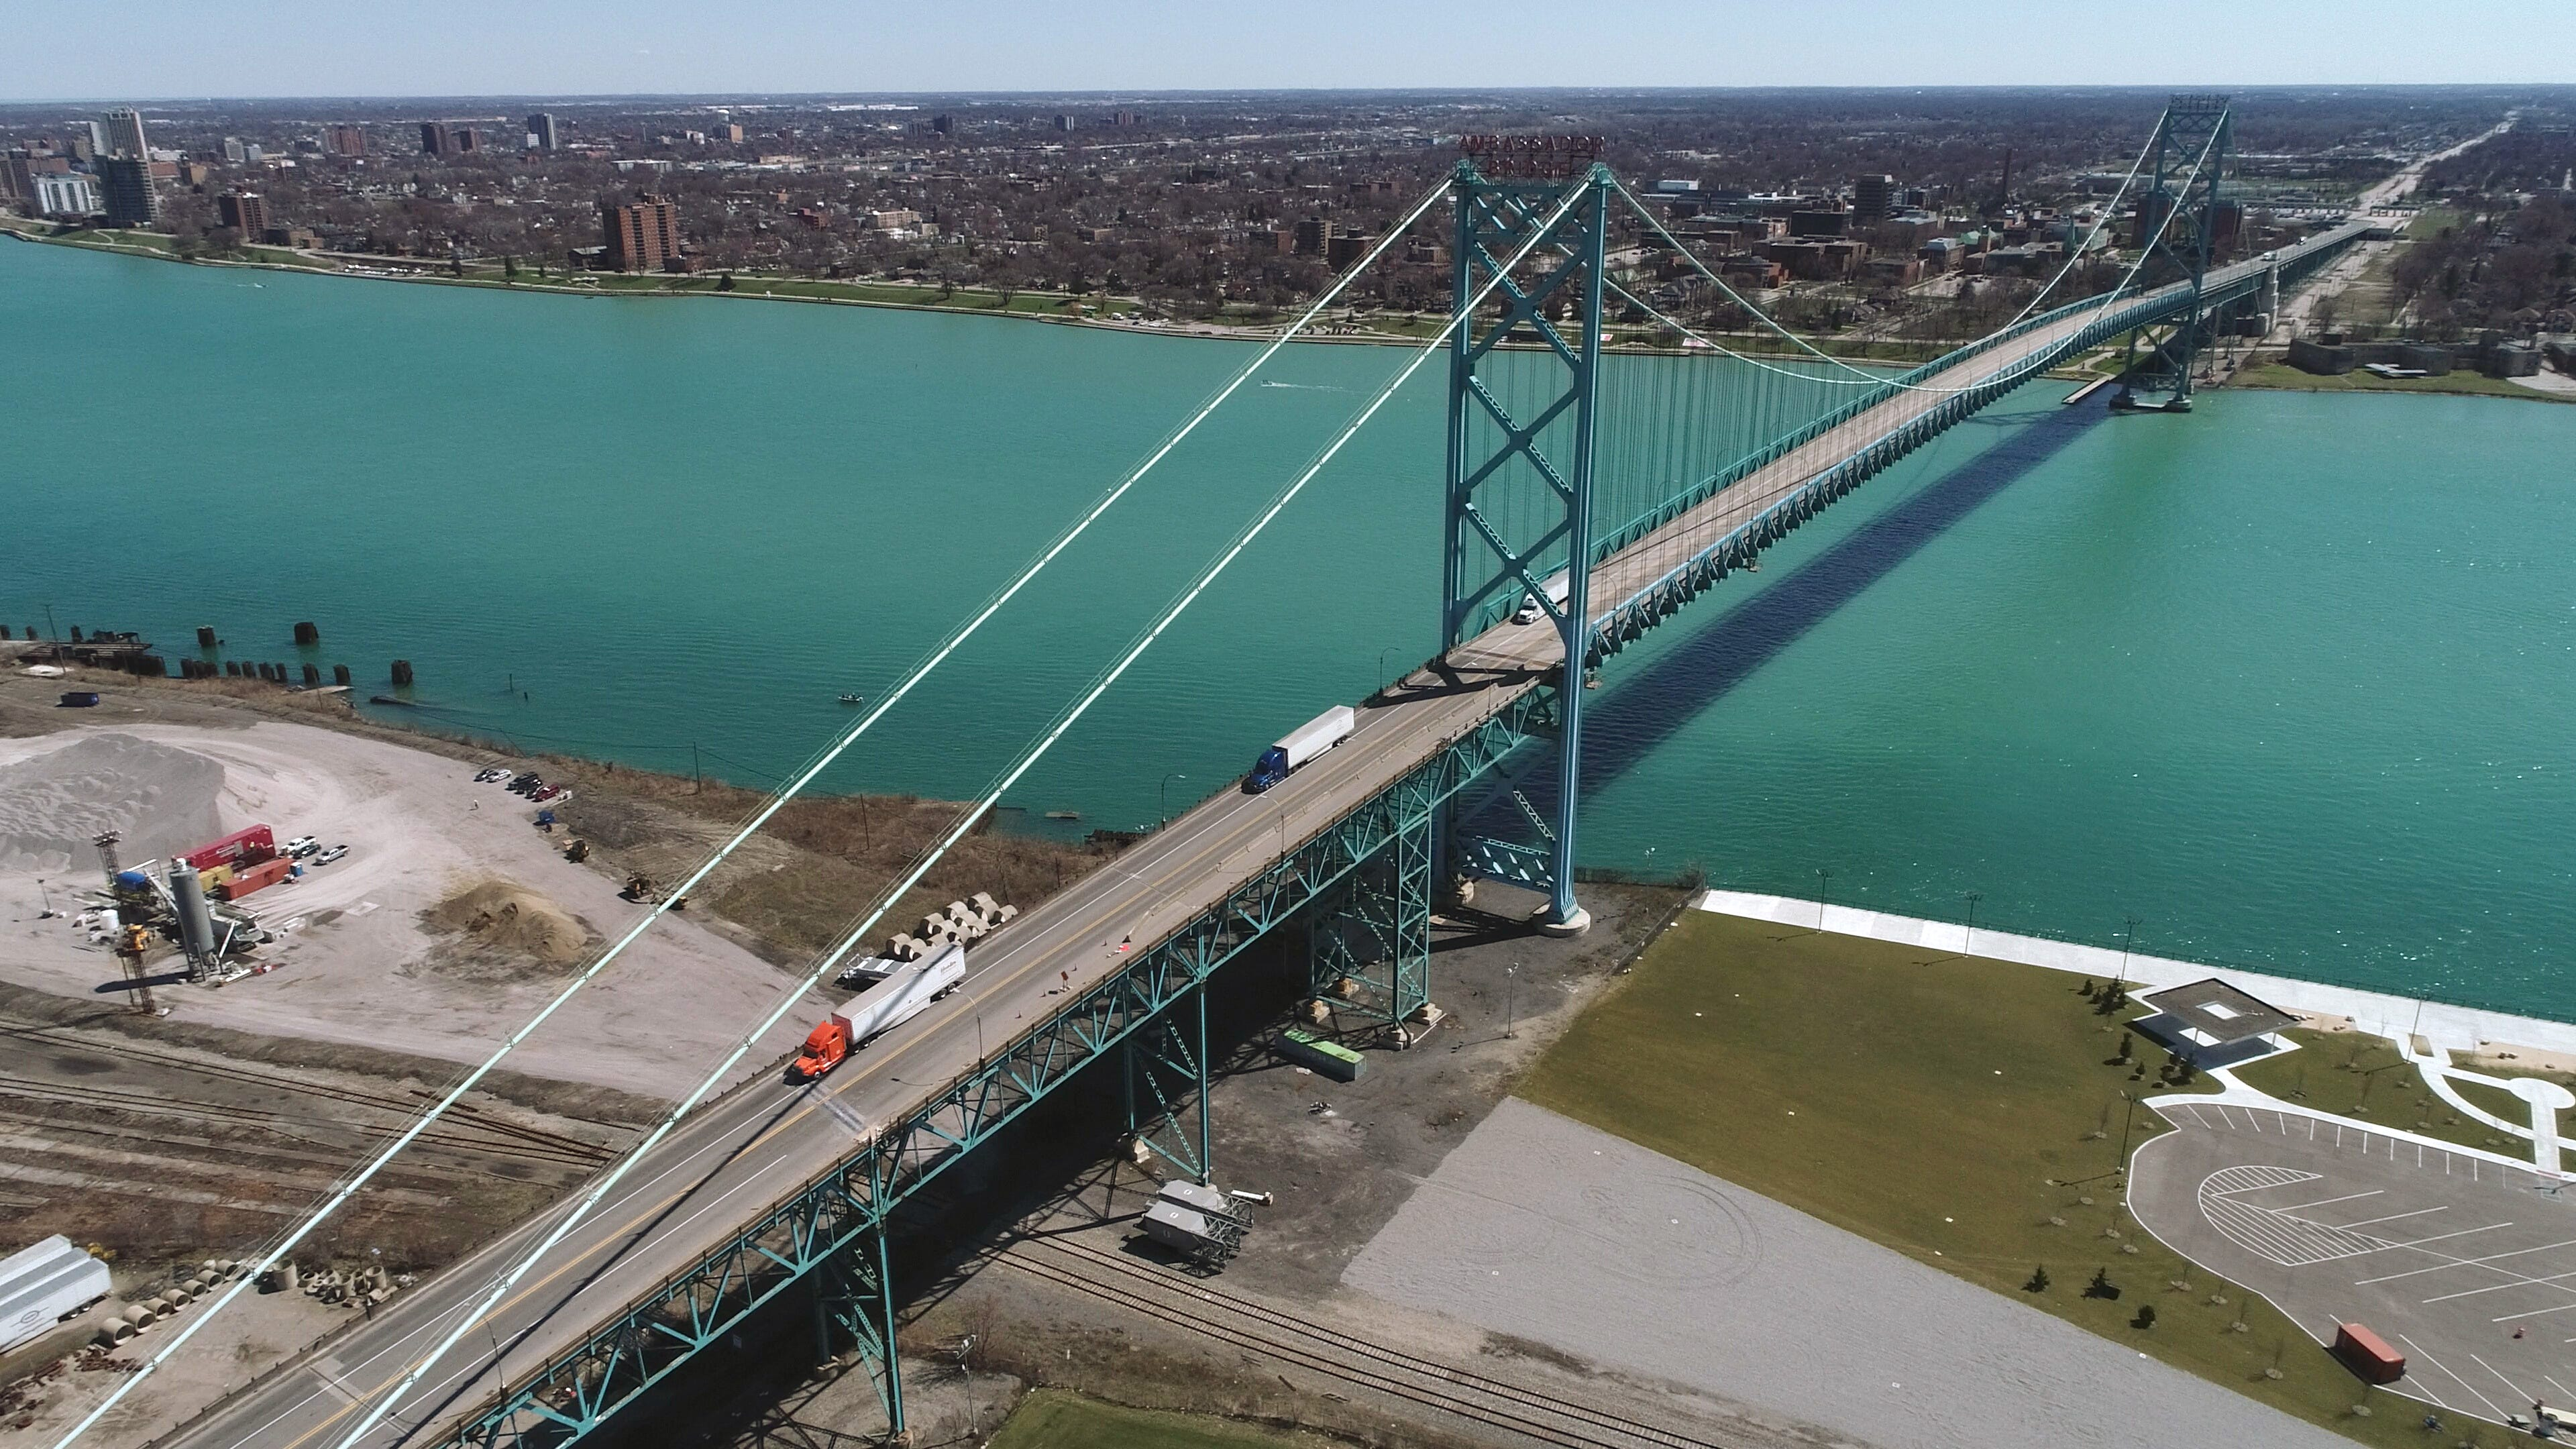 The Ambassador Bridge on April 2, 2020. The bridge, which spans the Detroit River and connects Detroit to Windsor, is owned by Matty Moroun.